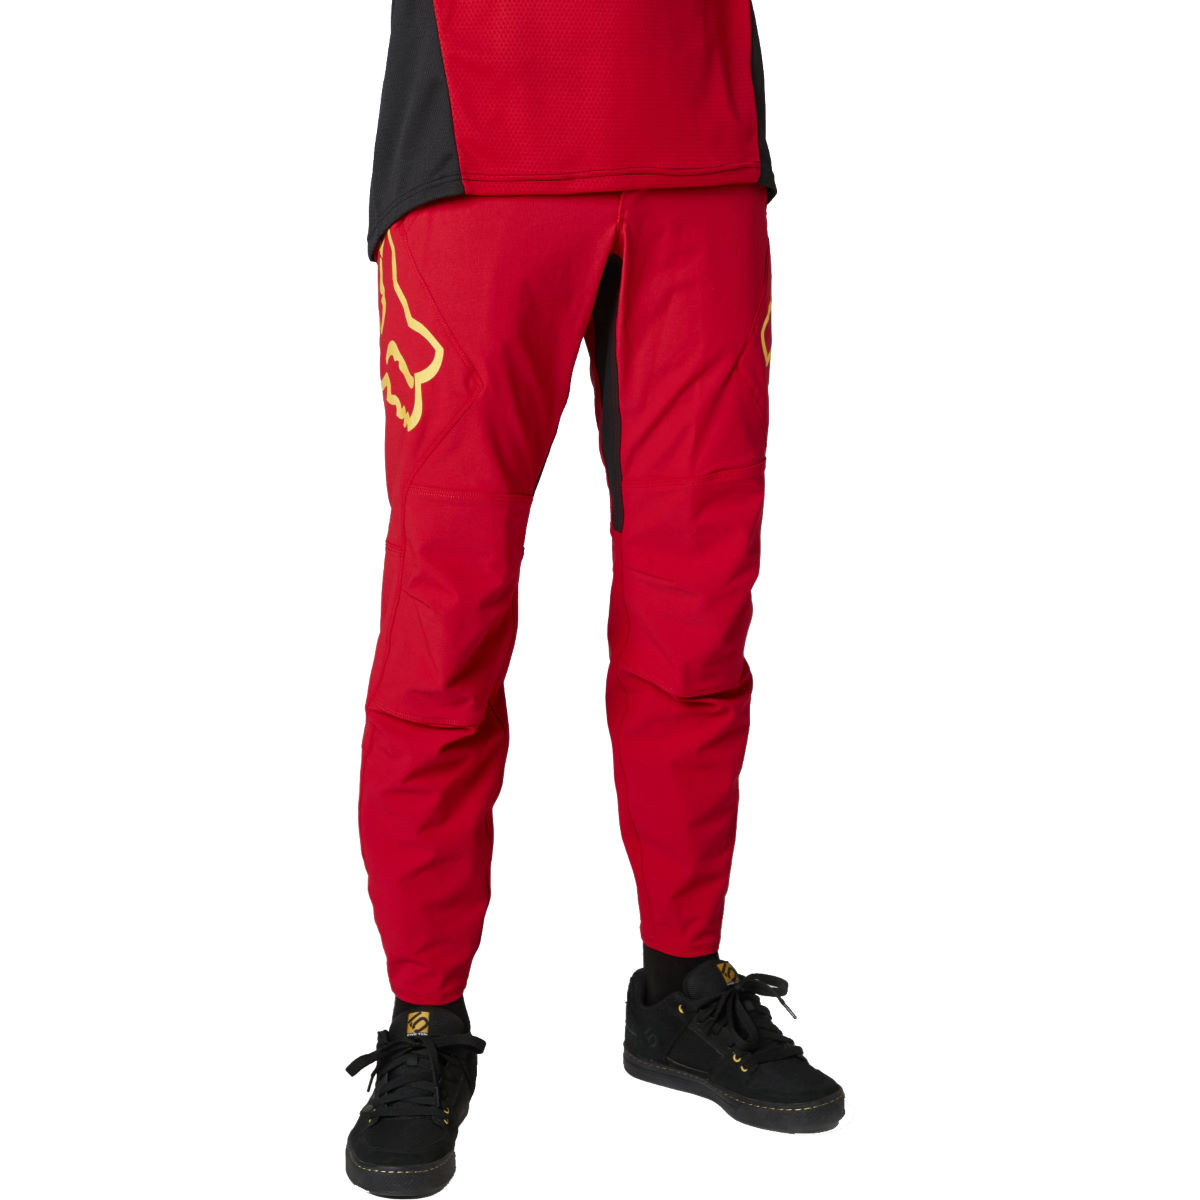 Fox Racing Defend Cycling Trousers Rs - 36 Chili  Trousers